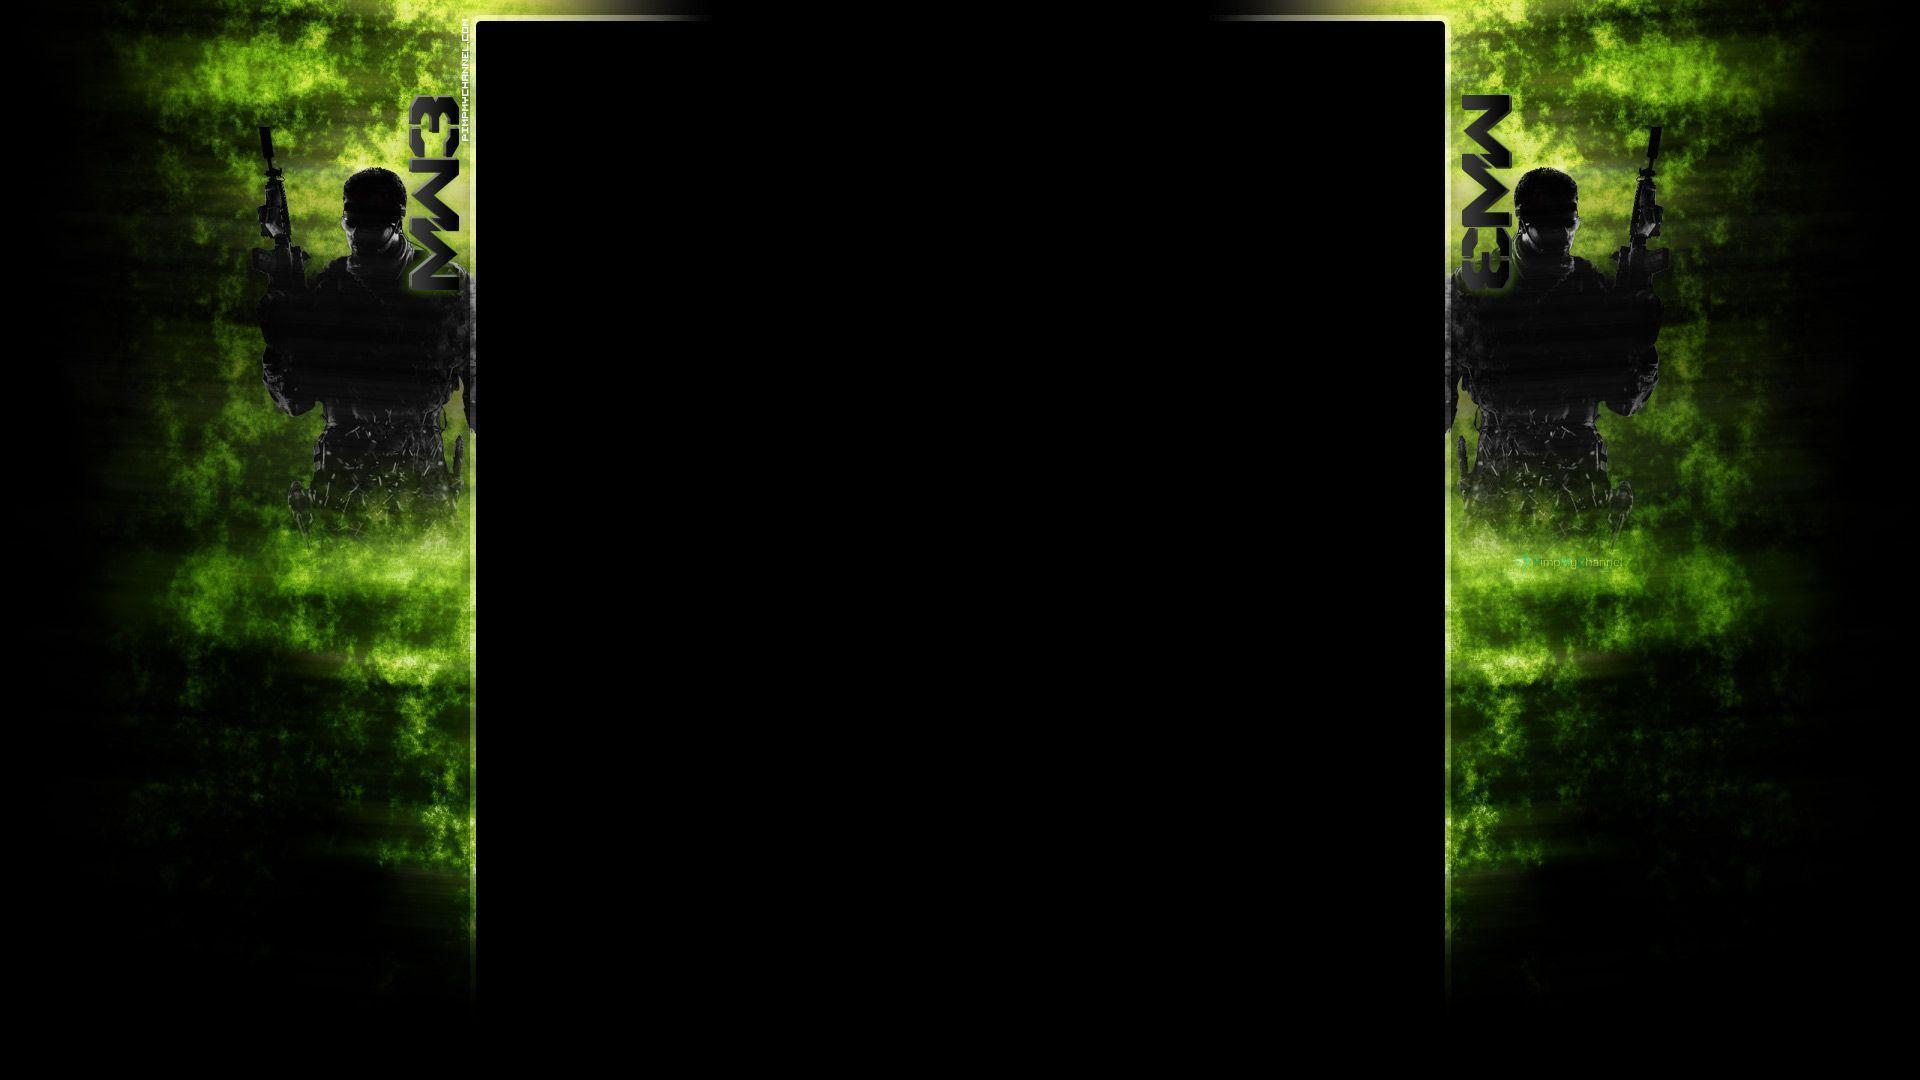 youtube backgrounds layouts 2012 - photo #42